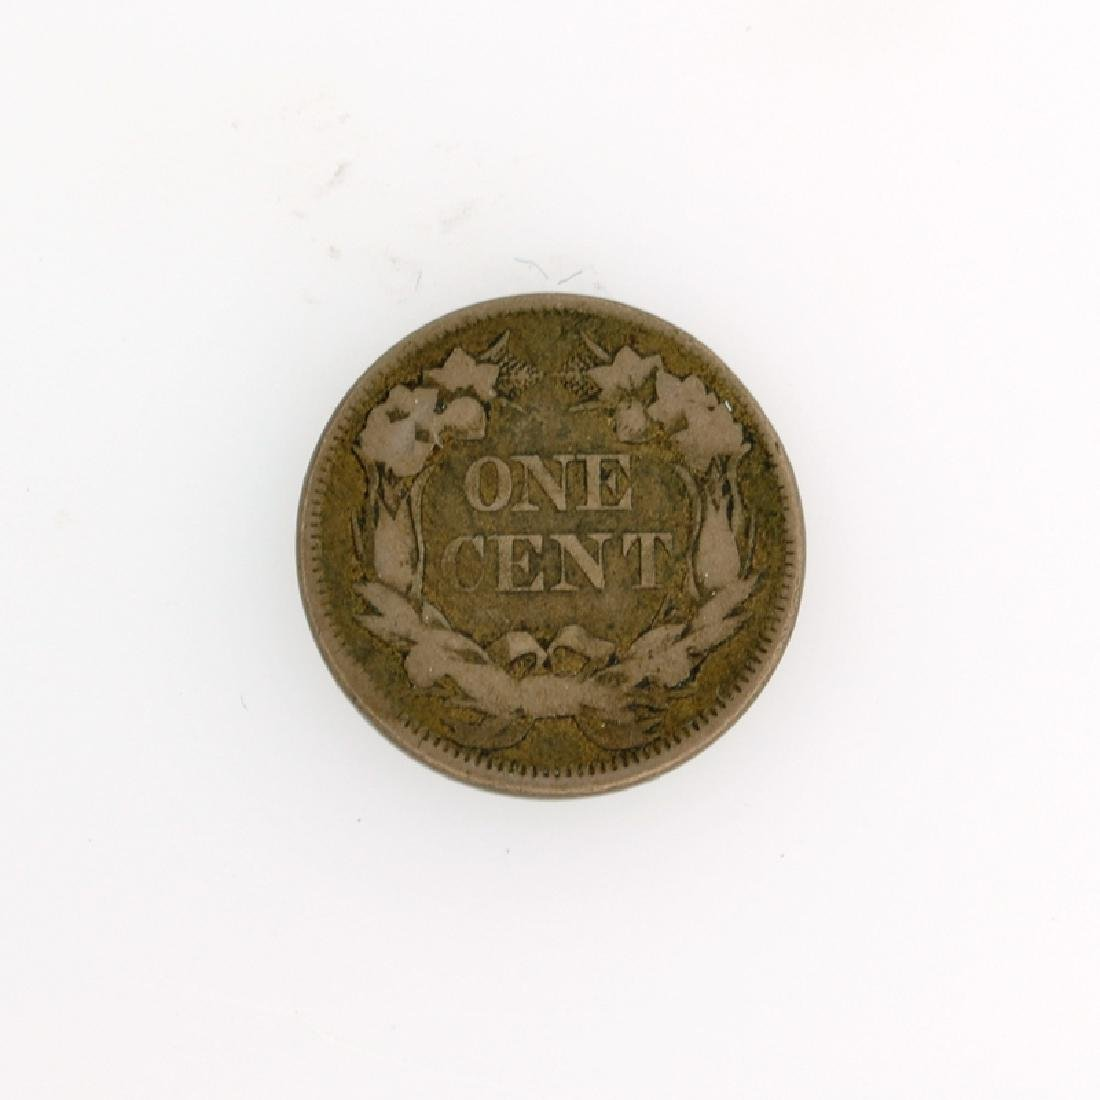 1858 Flying Eagle Cent Coin - 2